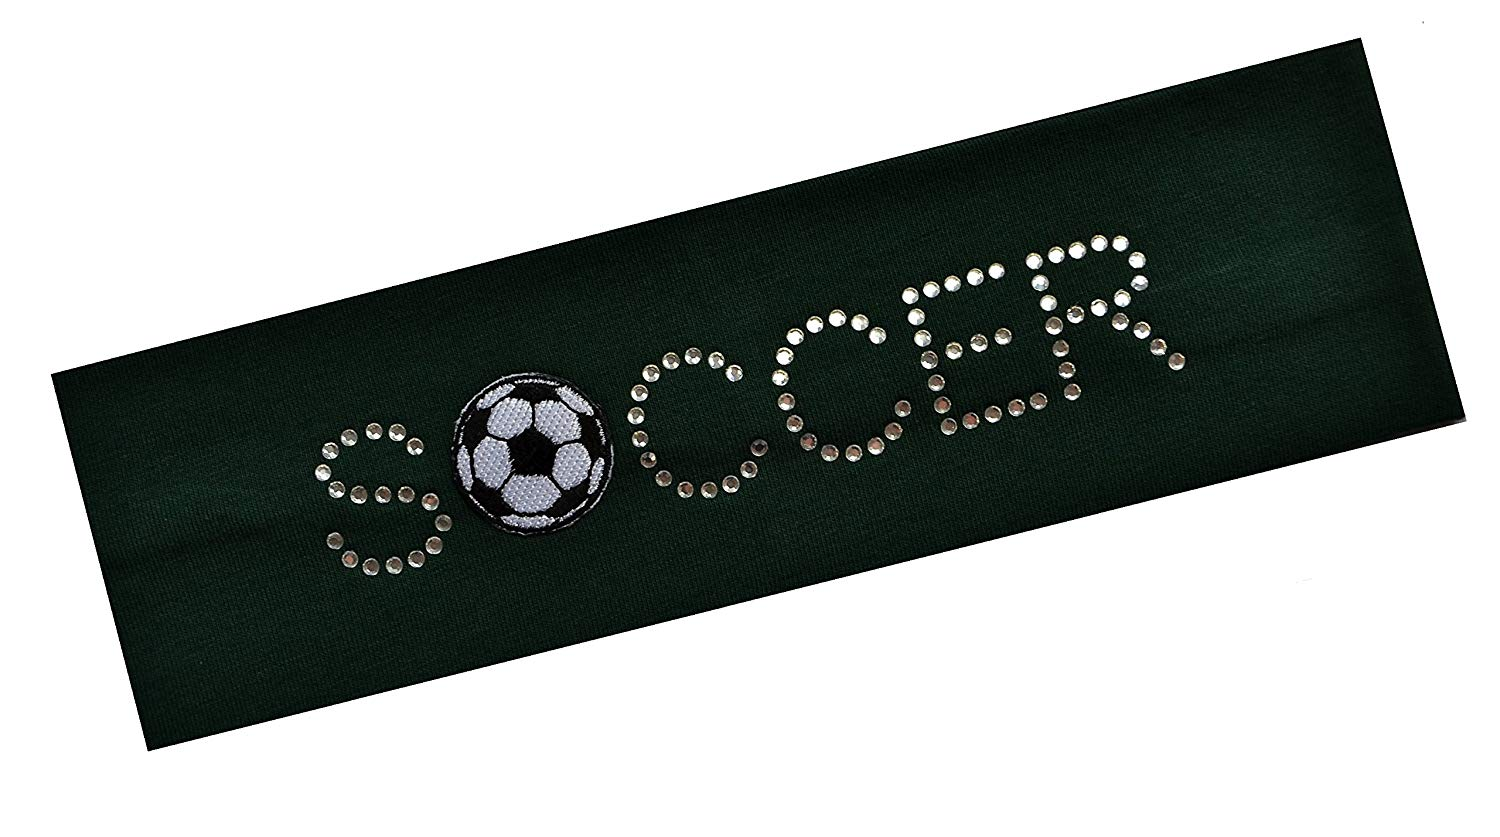 SOCCER BALL Rhinestone Cotton Stretch Headband for Girls, Teens and Adults Funny Girl Designs Soccer Team Gifts